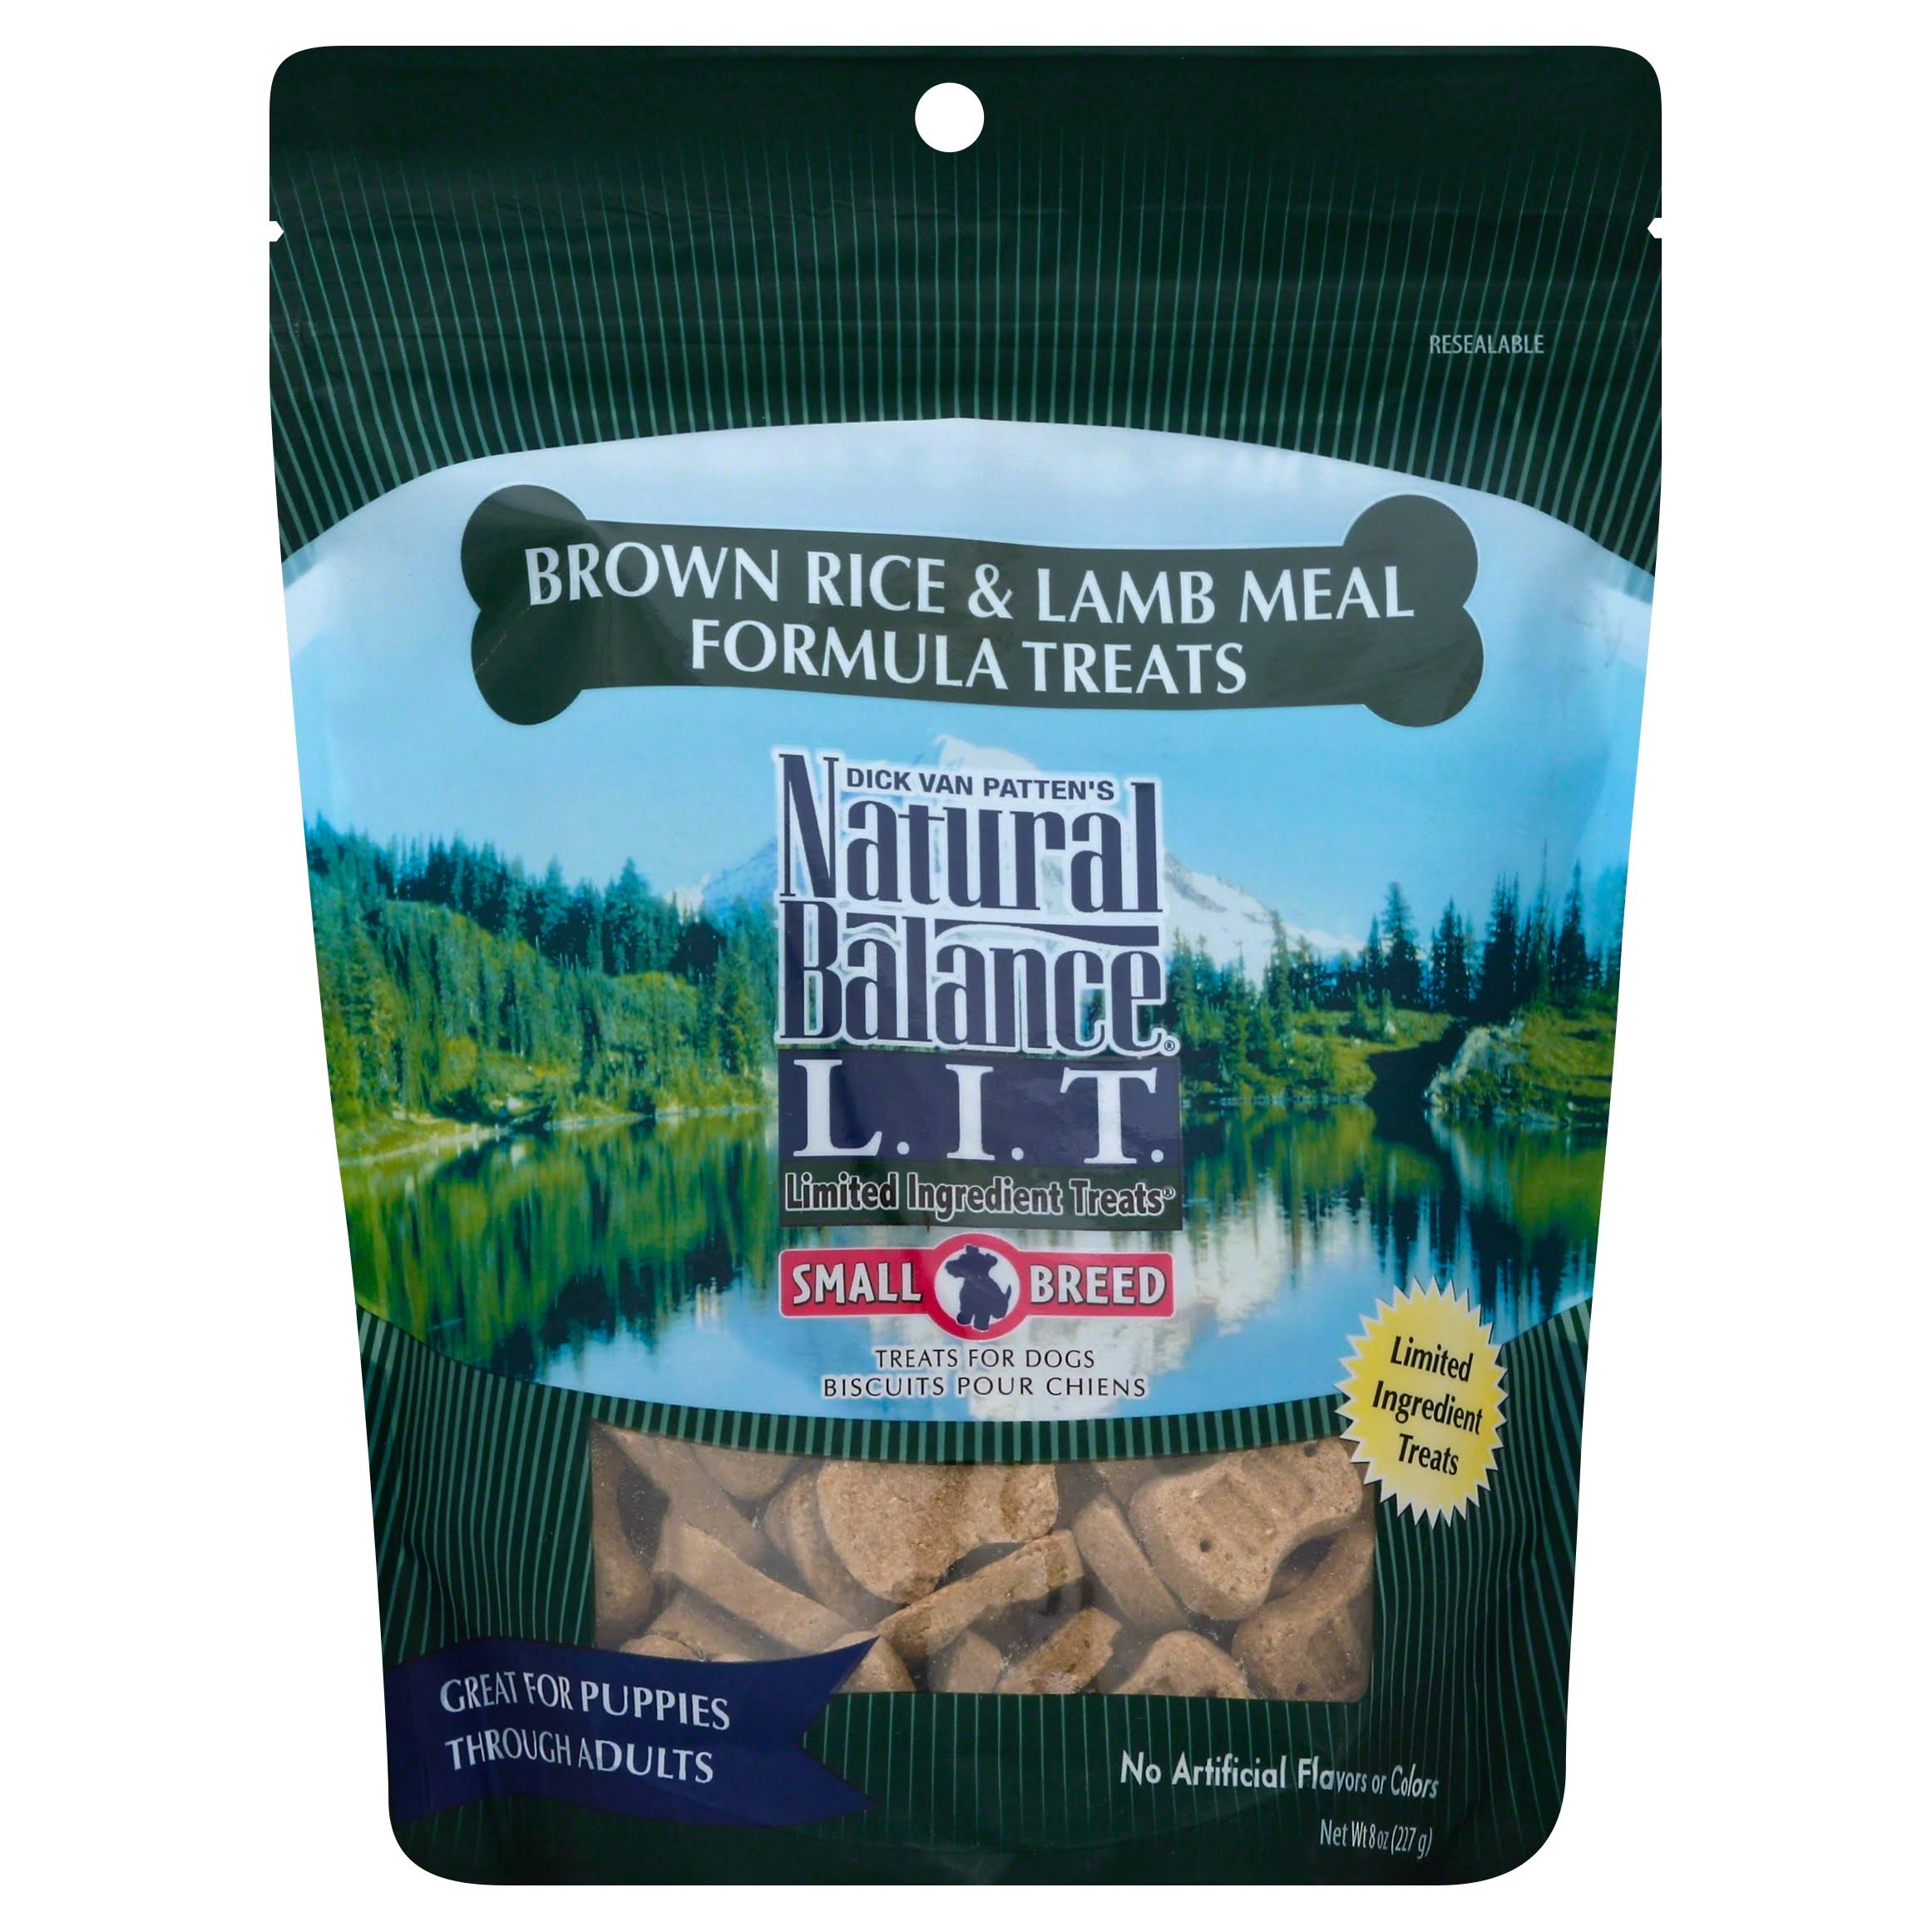 Natural Balance Limited Ingredient Treats for Dogs - Brown Rice and Lamb Meal Formula, 8oz